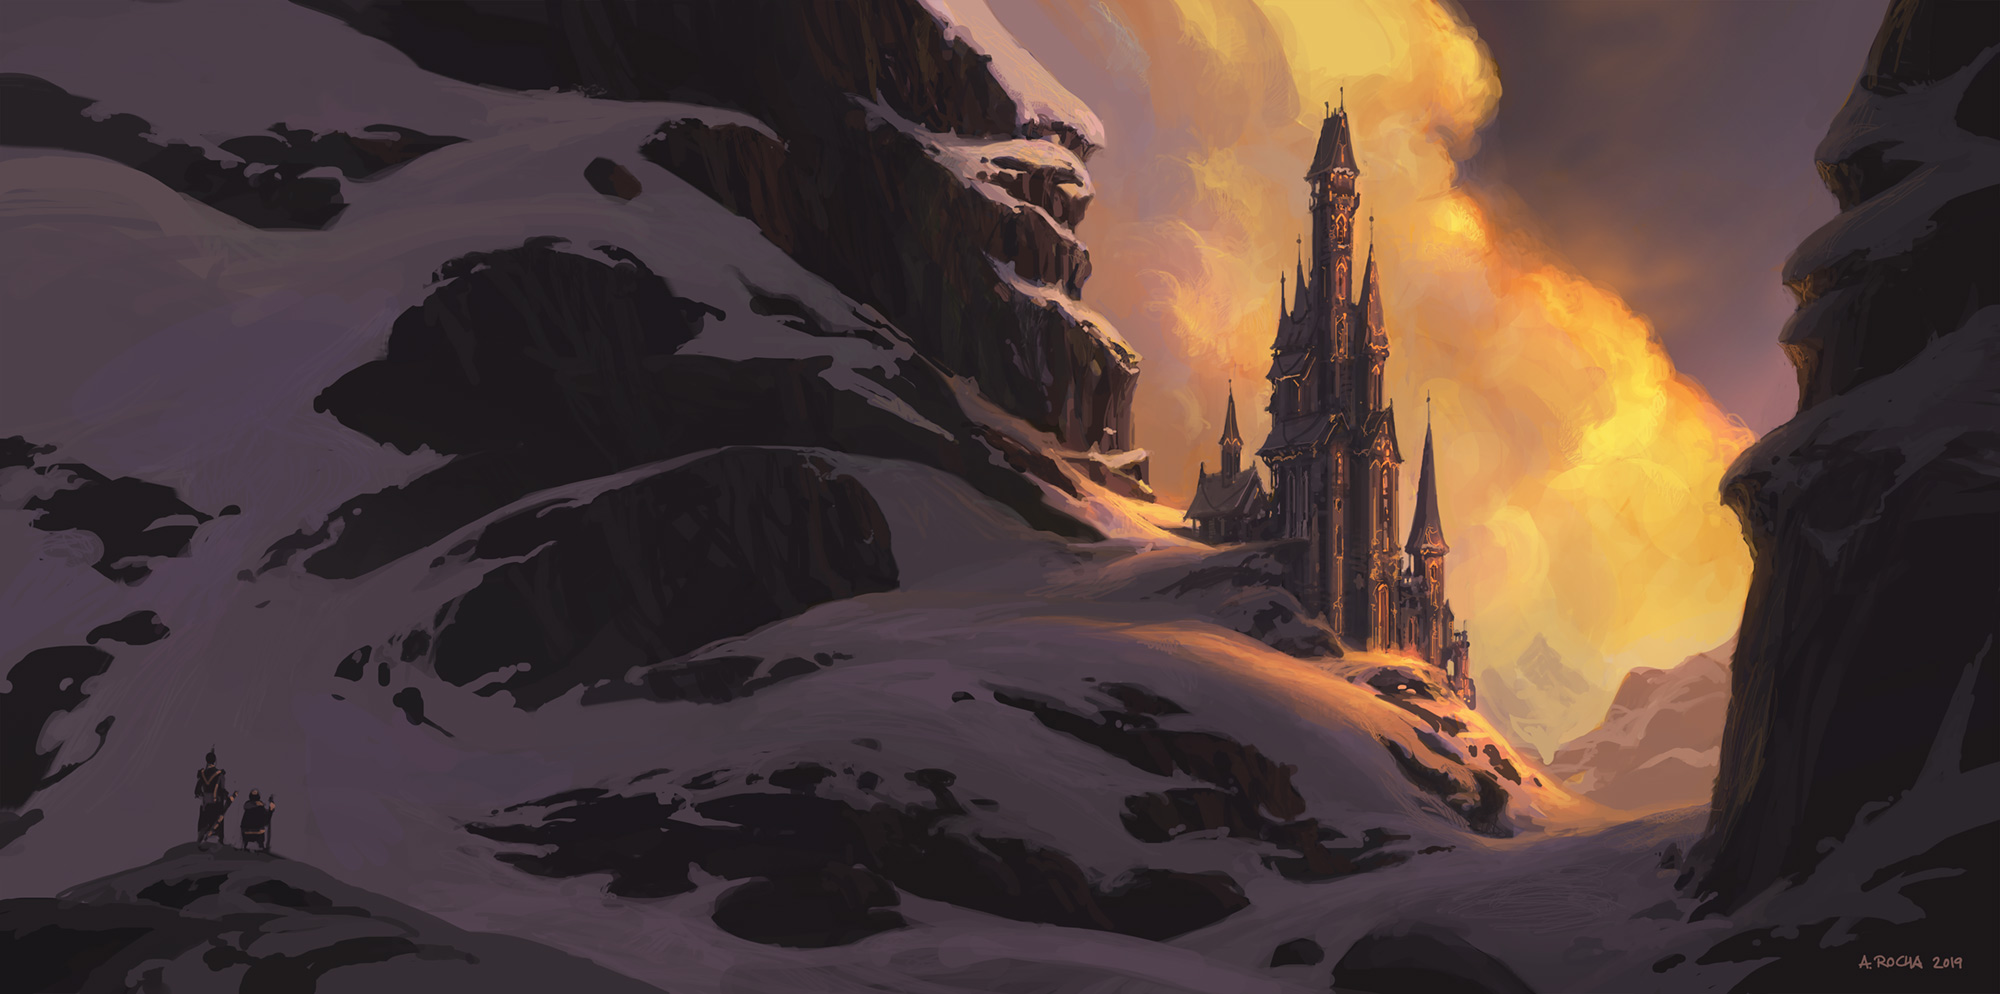 Wizard's Tower III by andreasrocha